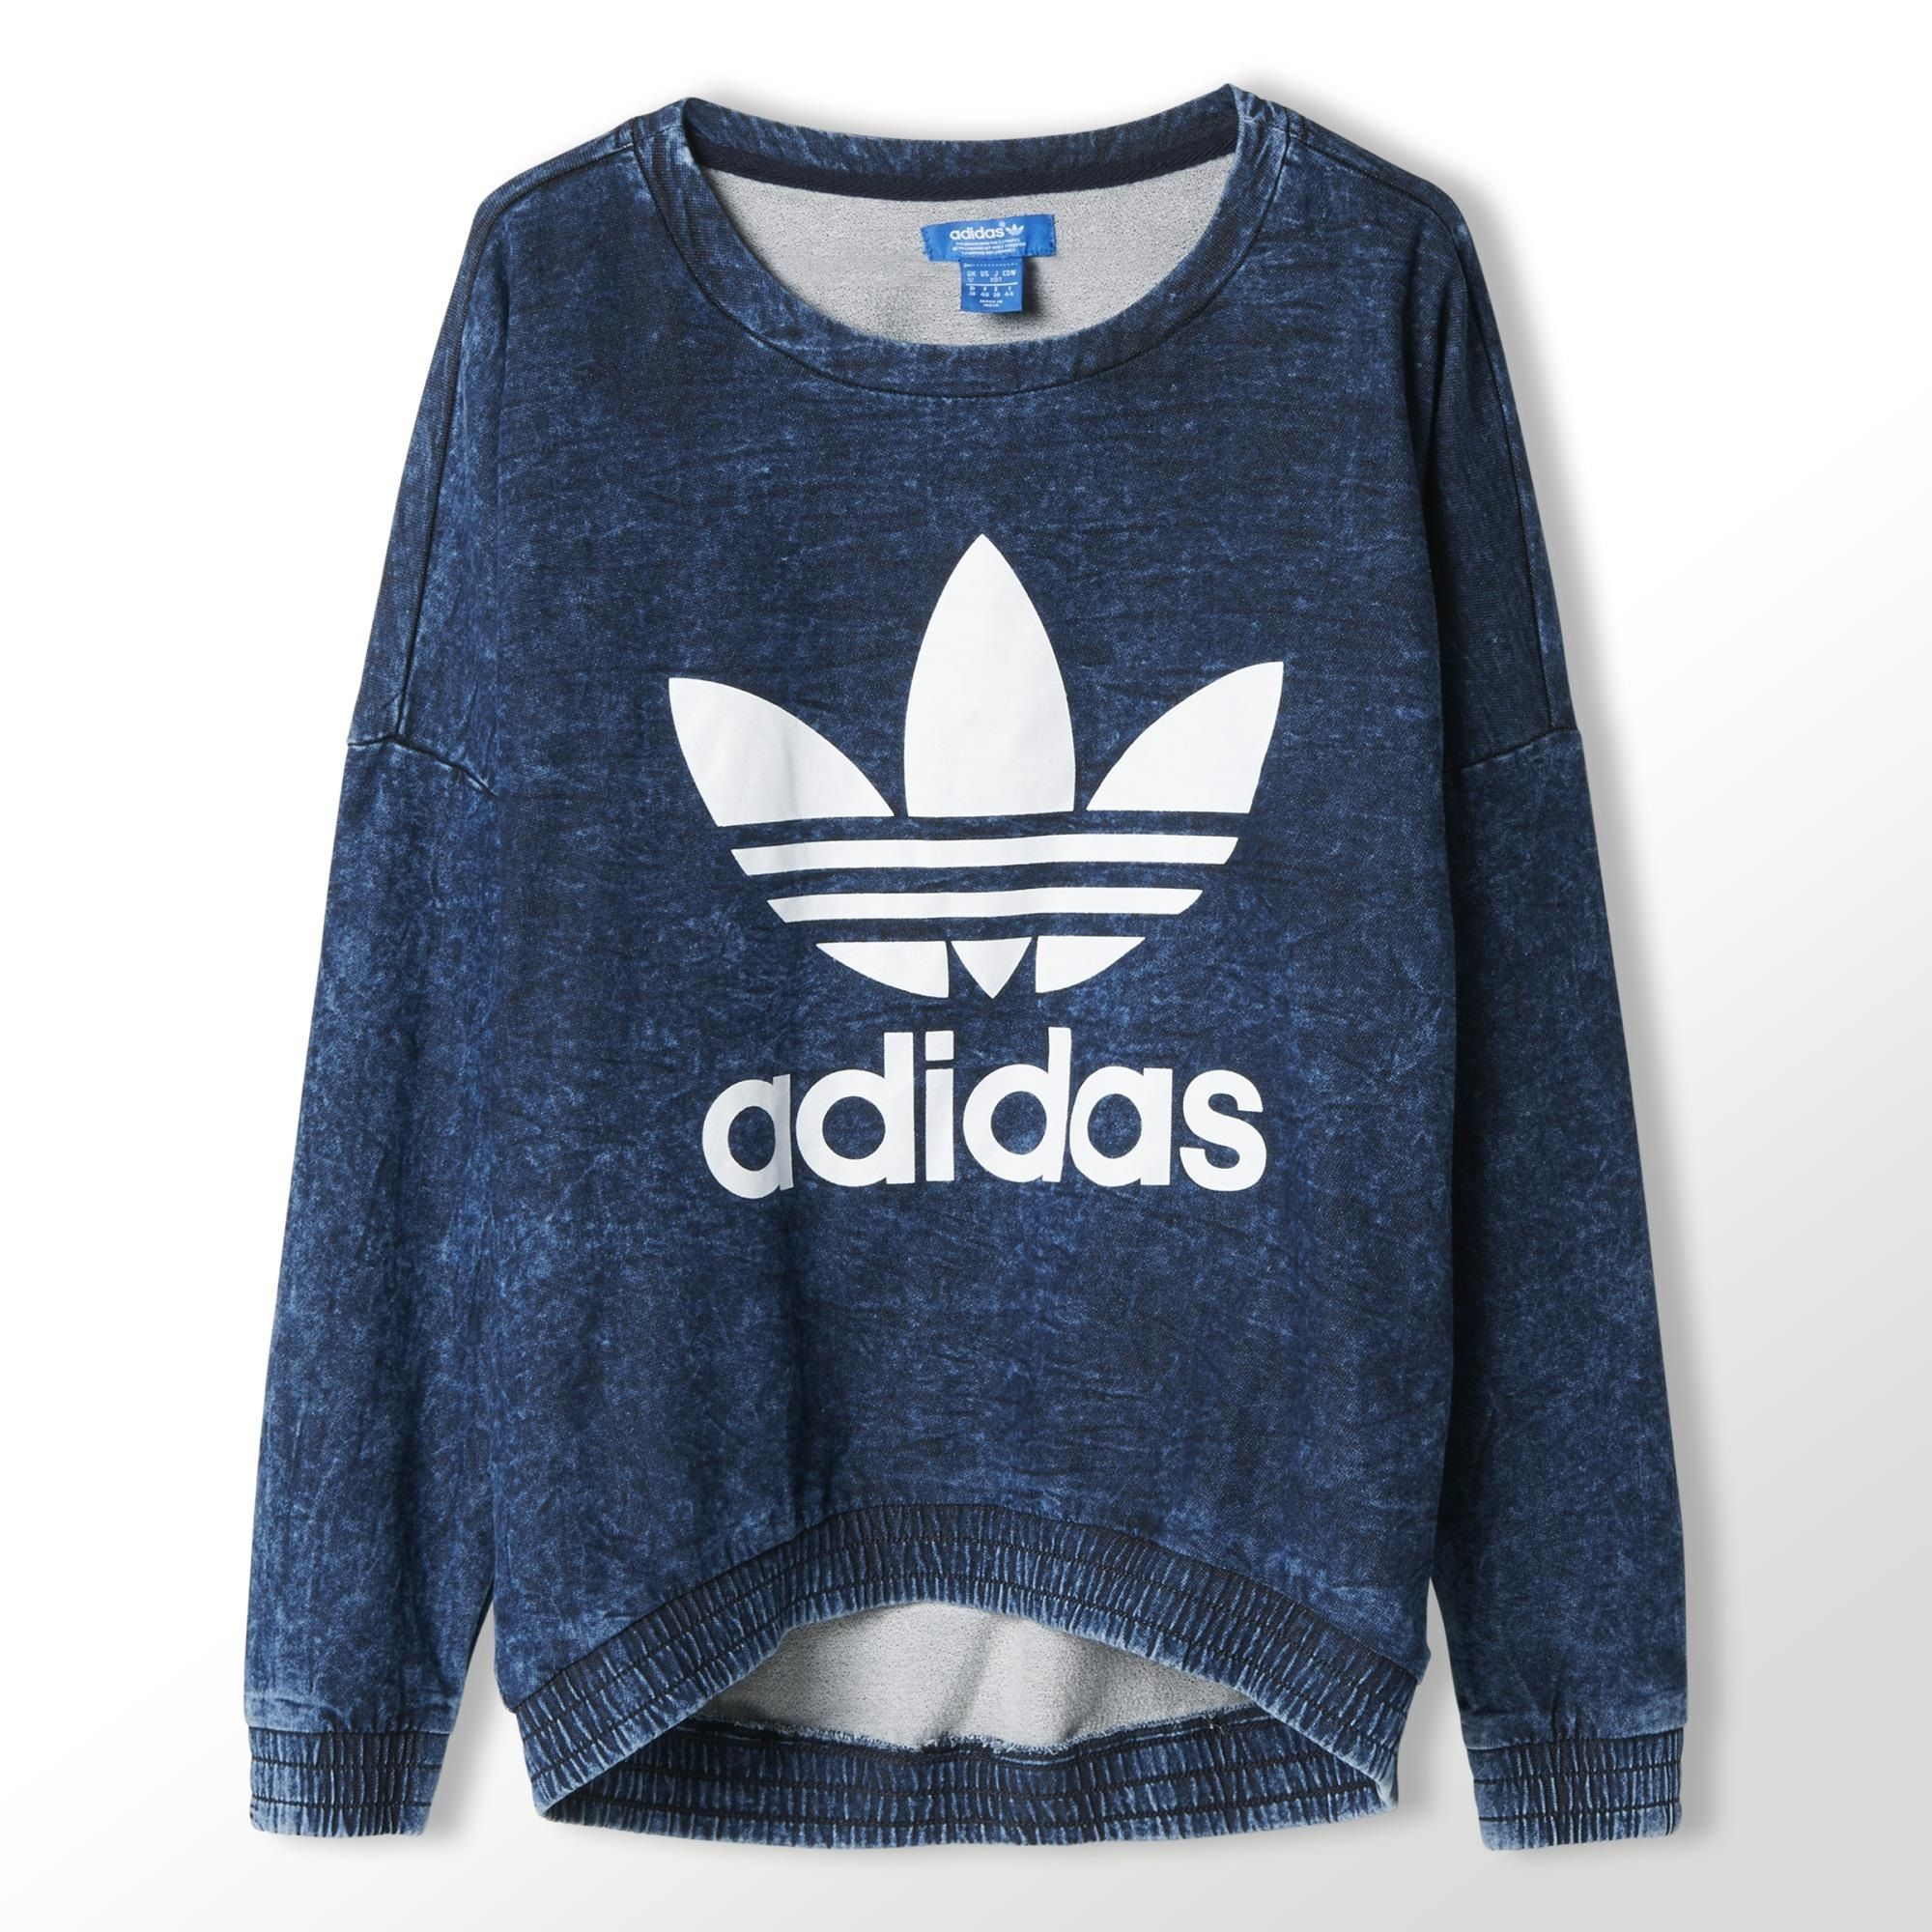 adidas Womens French Terry Acid-Wash Crewneck Sweatshirt | adidas Canada